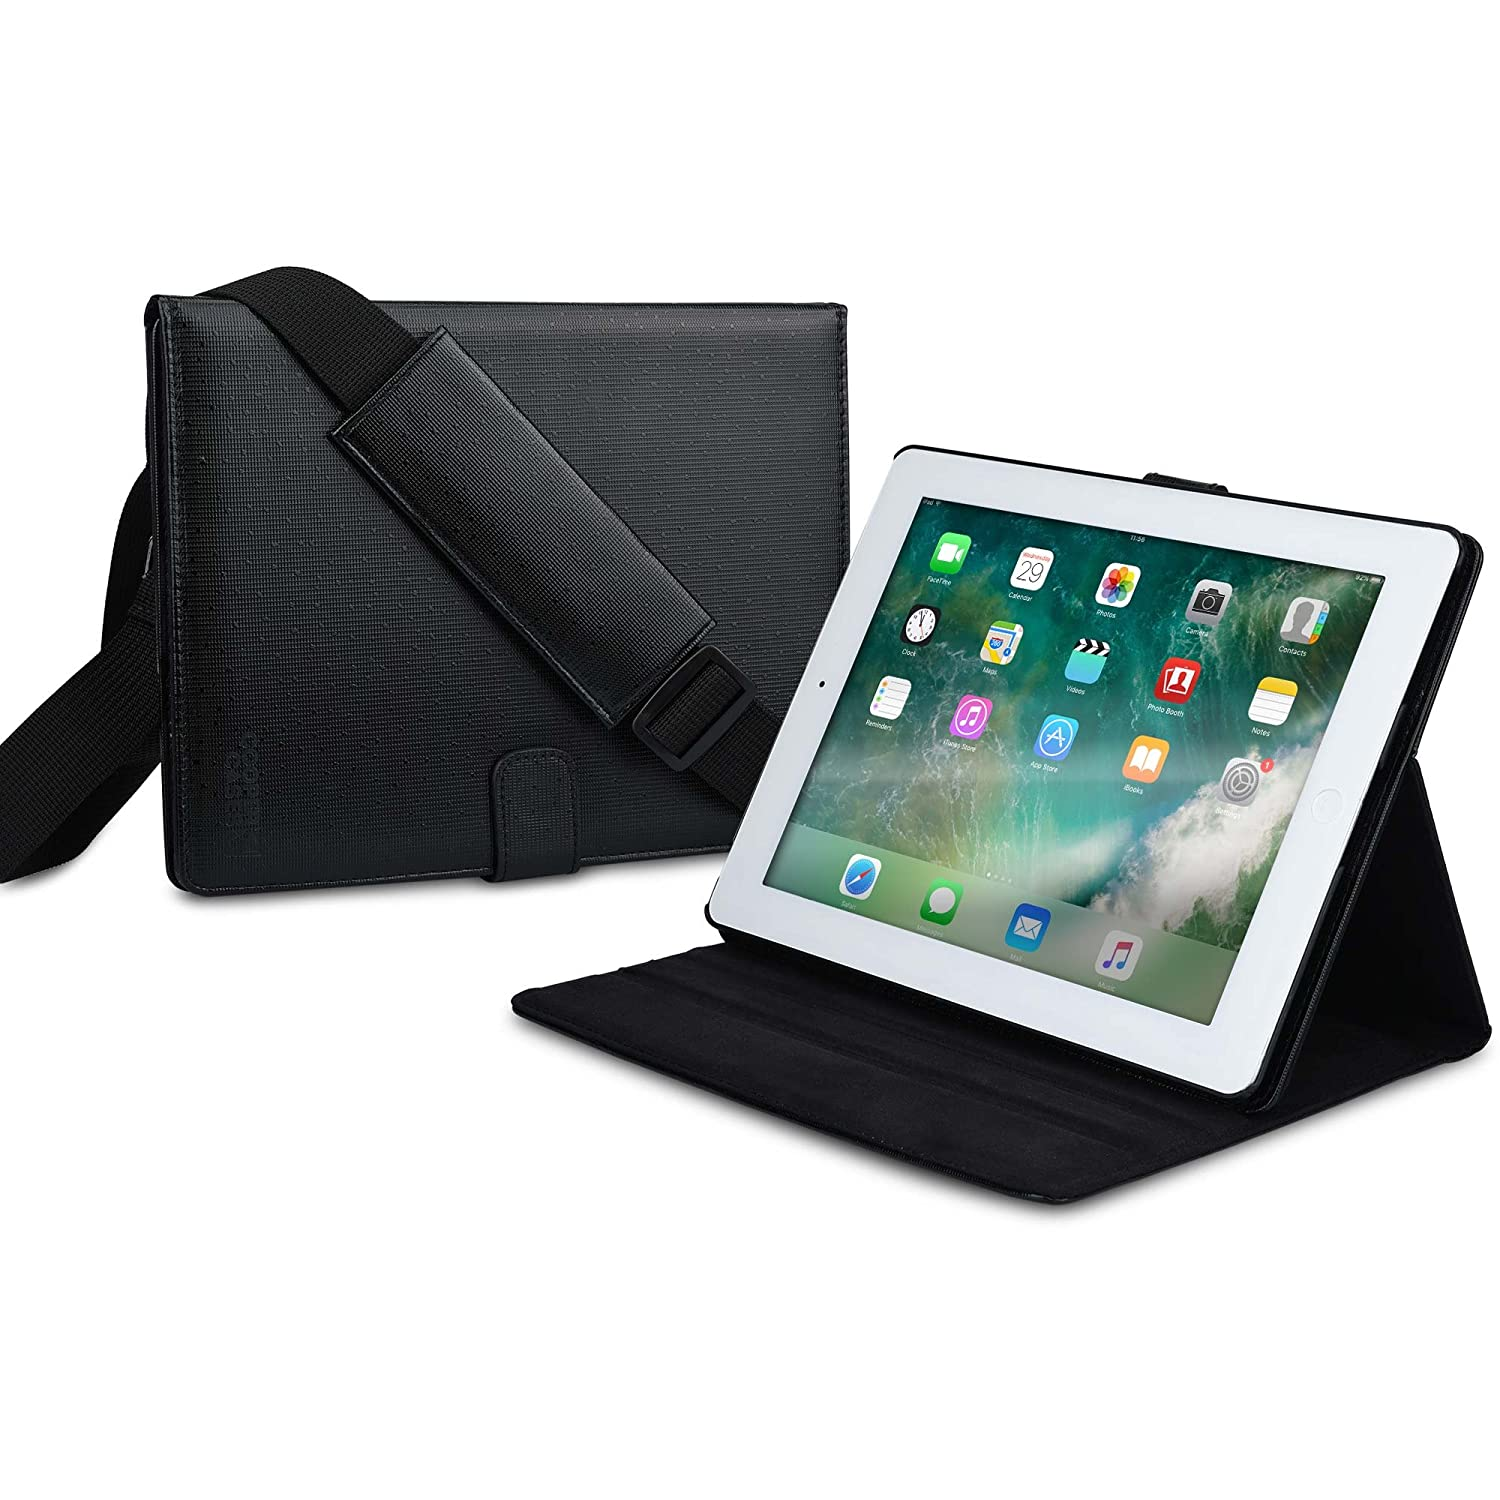 Cooper Magic Carry II Pro Case for iPad 4, iPad 3, iPad 2 | Protective Tablet Folio Cover, Carrying Case for Business School Restaurant Travel (Black)